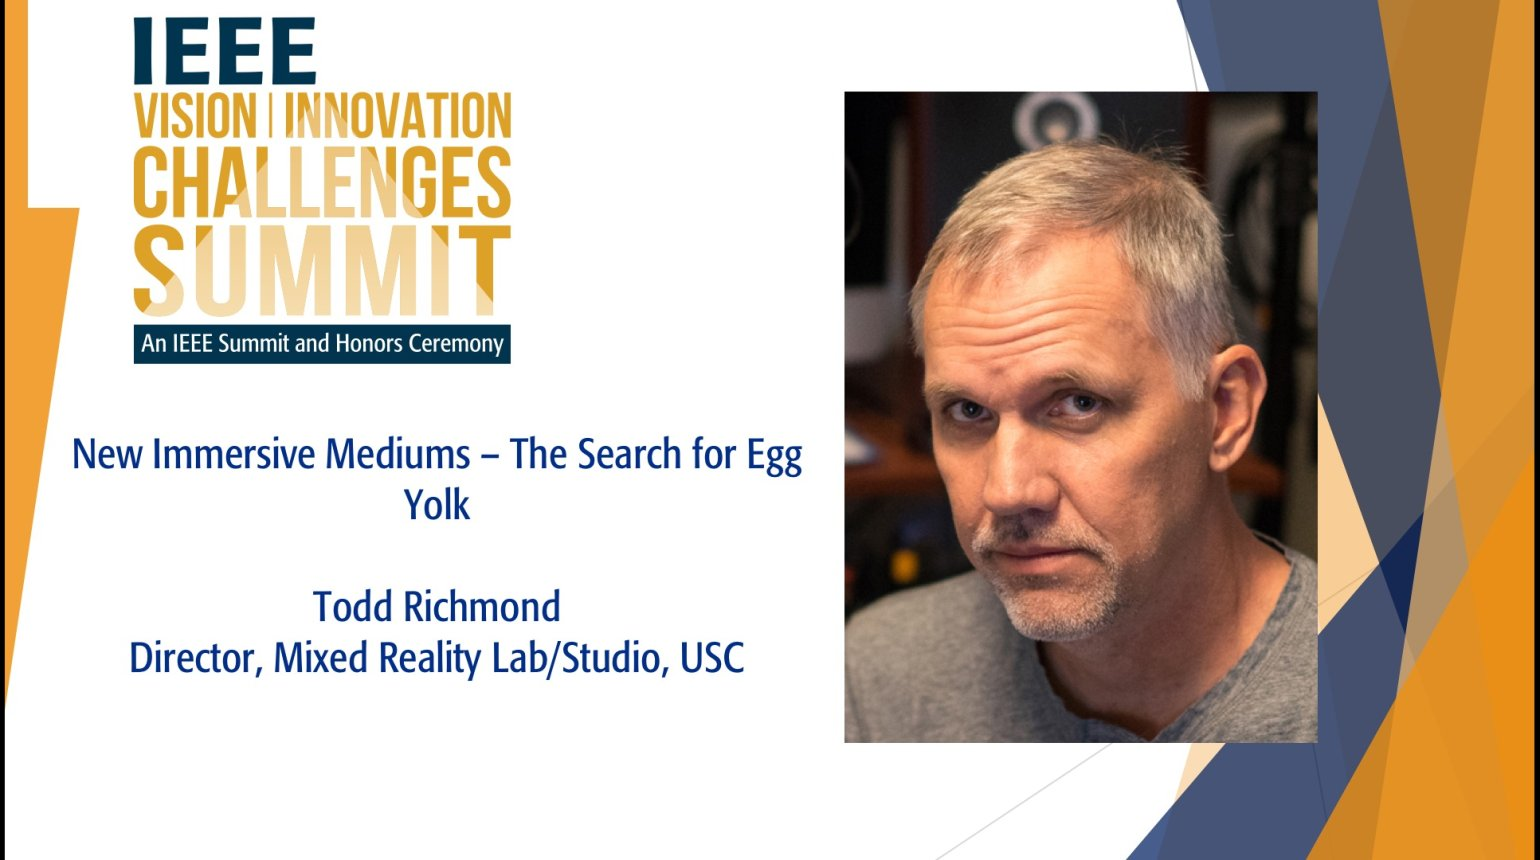 New Immersive Mediums - The Search For Egg Yolk: IEEE VICS 2018